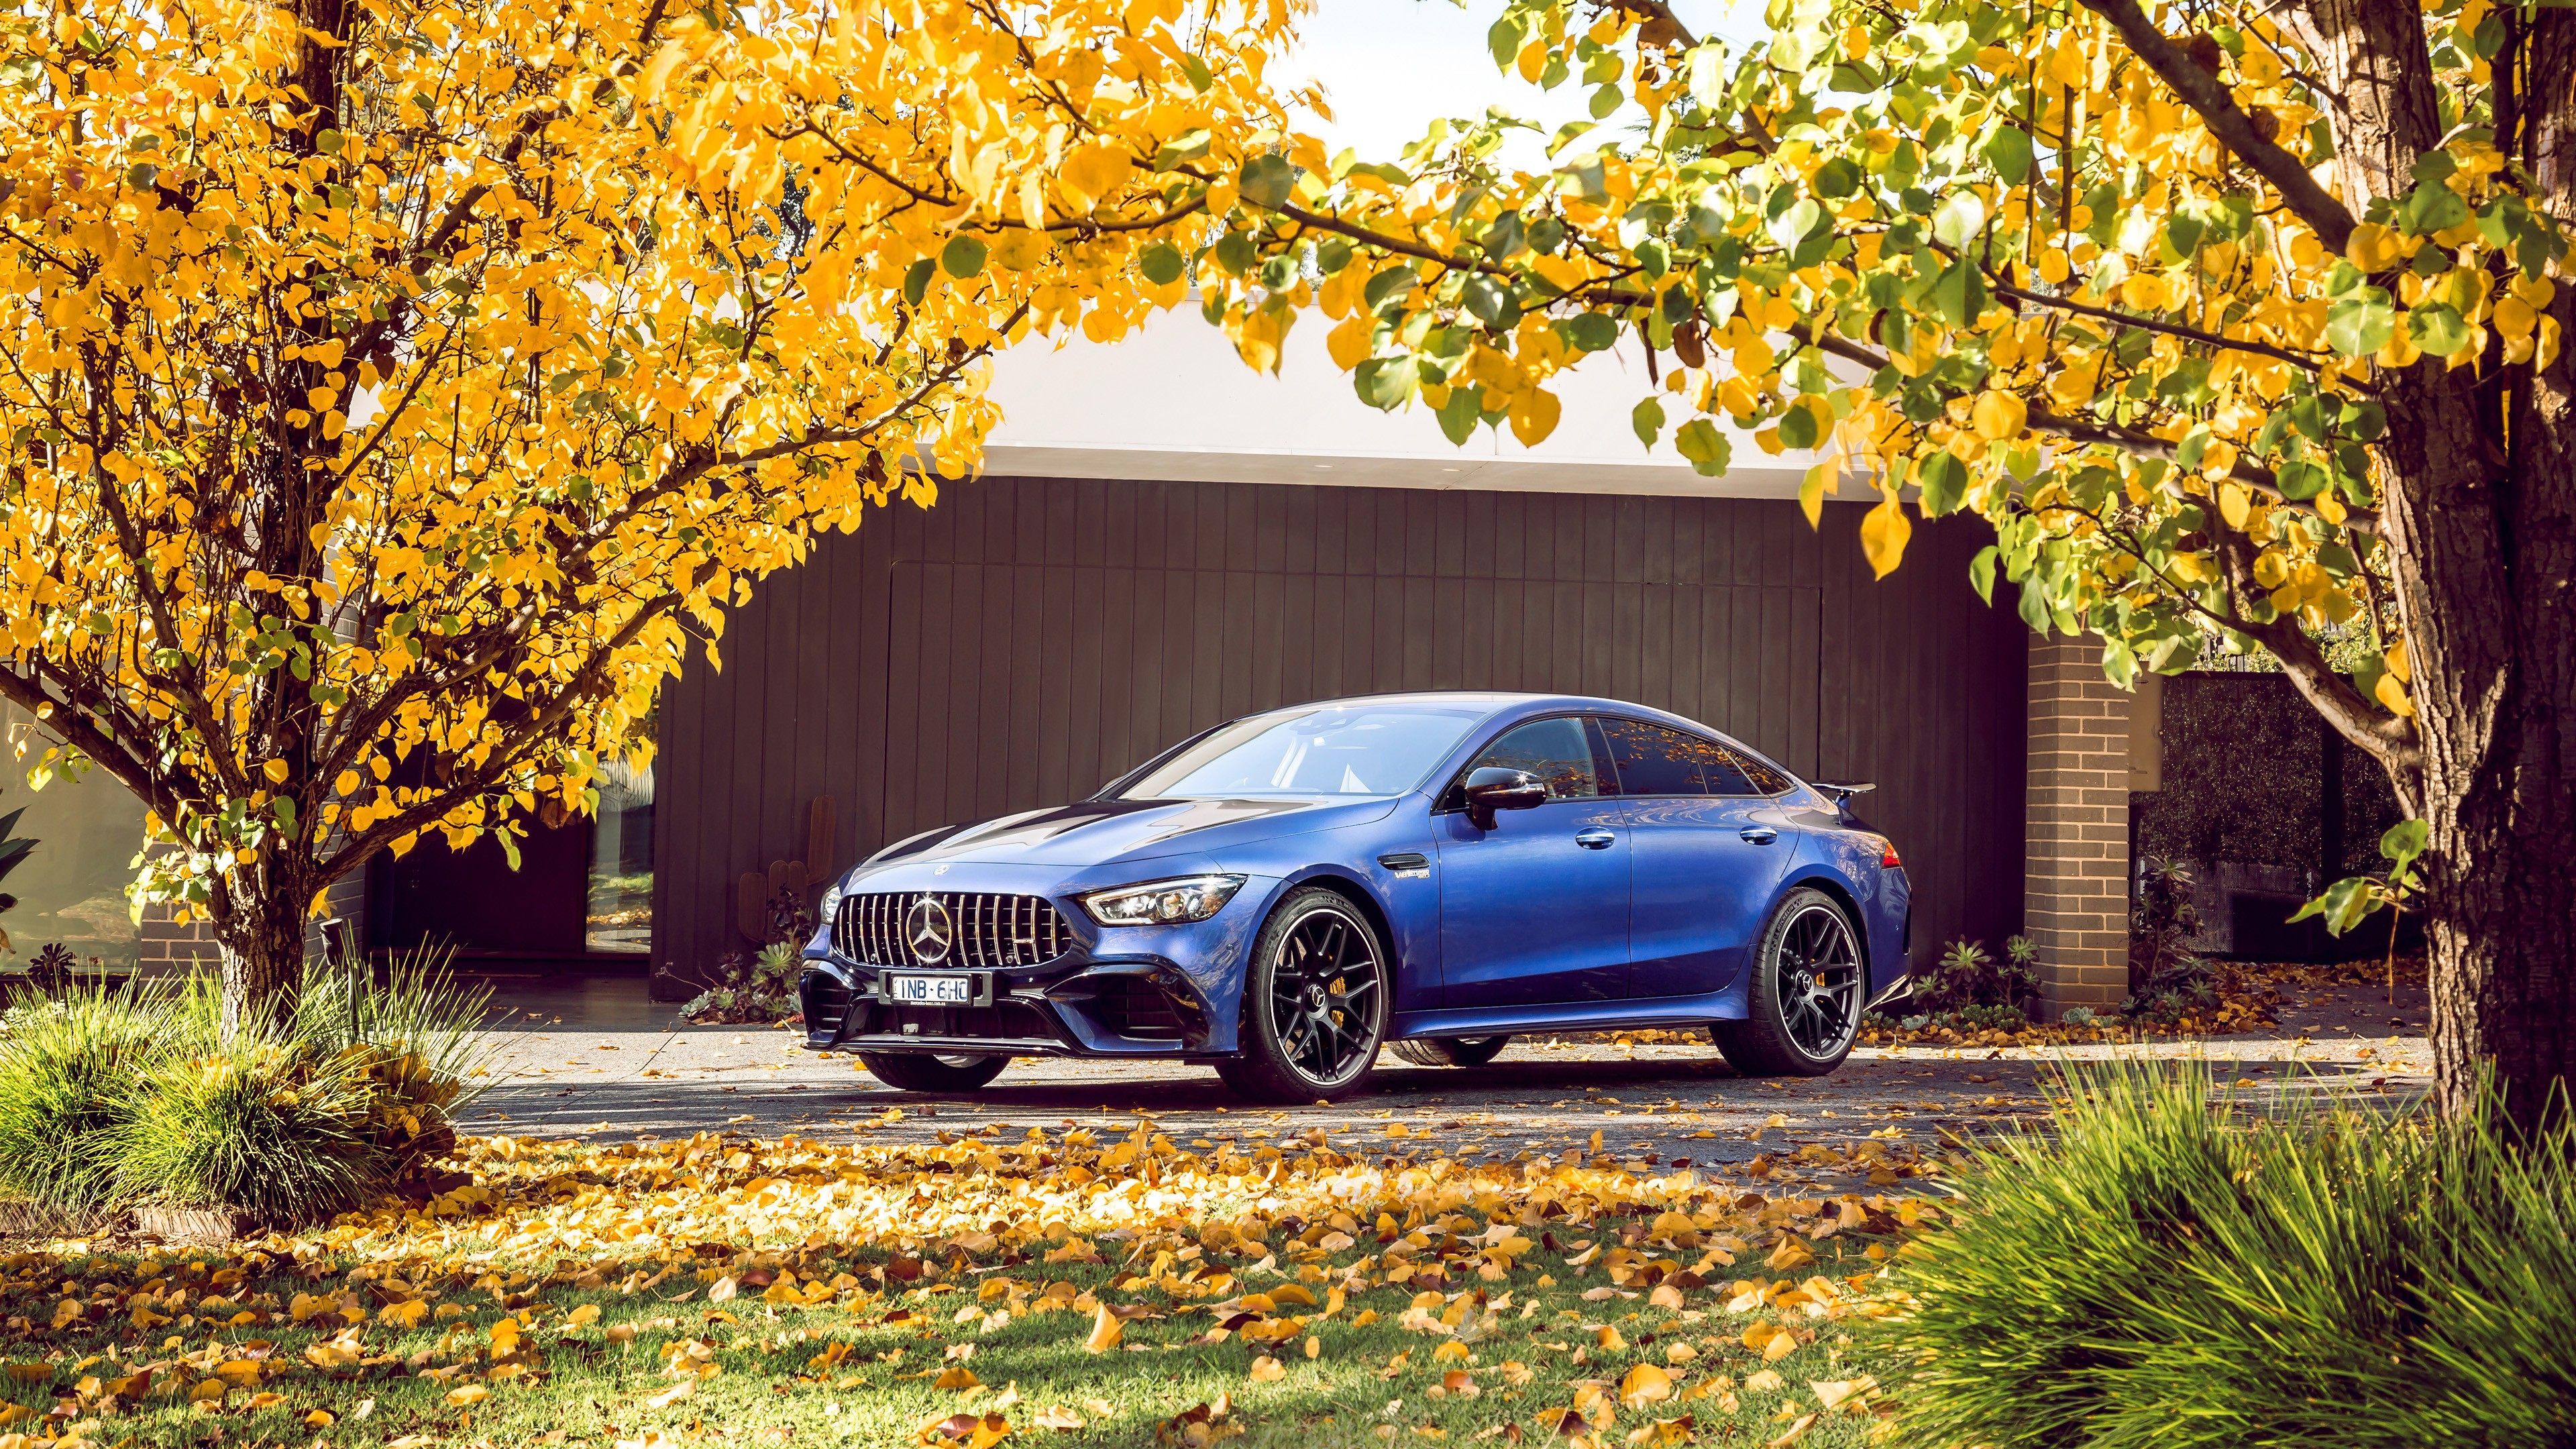 Mercedes Amg Gt 63 S 4matic 4 Door Coupe 2019 4k Wallpaper